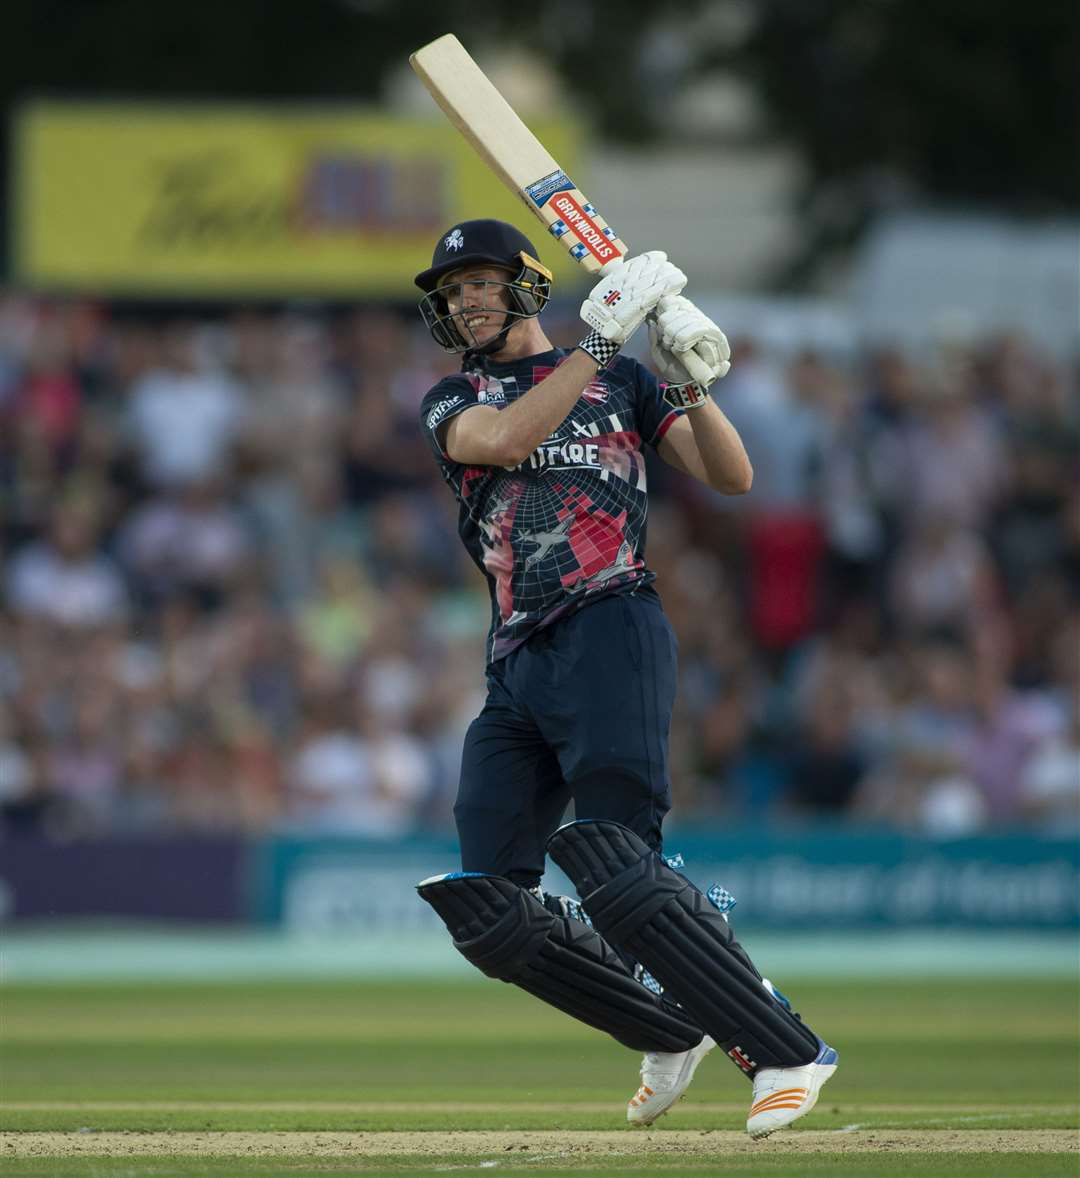 Adam Milne at the crease during Kent's T20 meeting with Essex. Picture: Ady Kerry